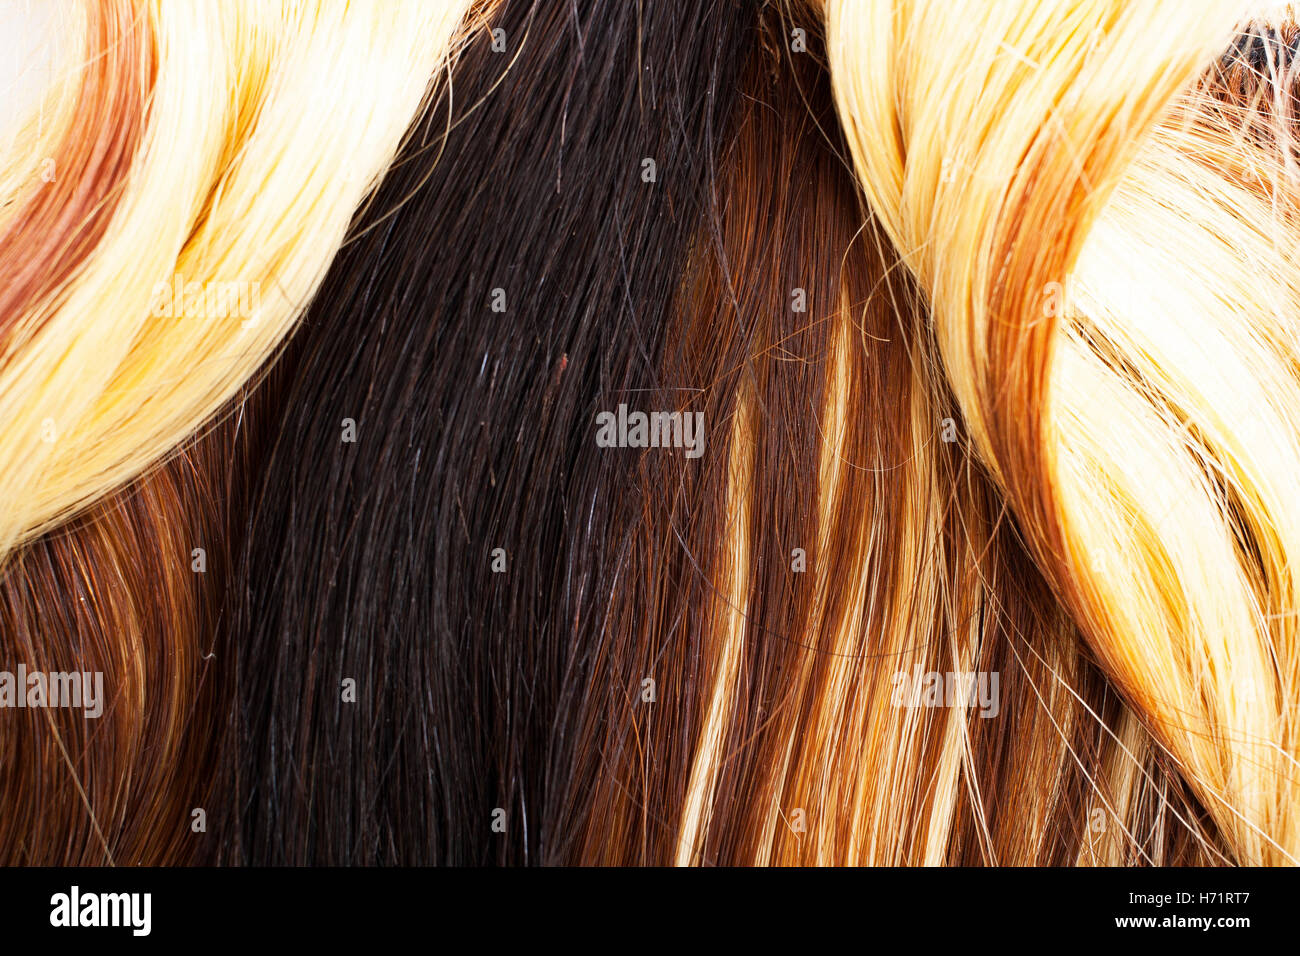 European Human Hair Extension Weft Colored Dry And Silky Hairs